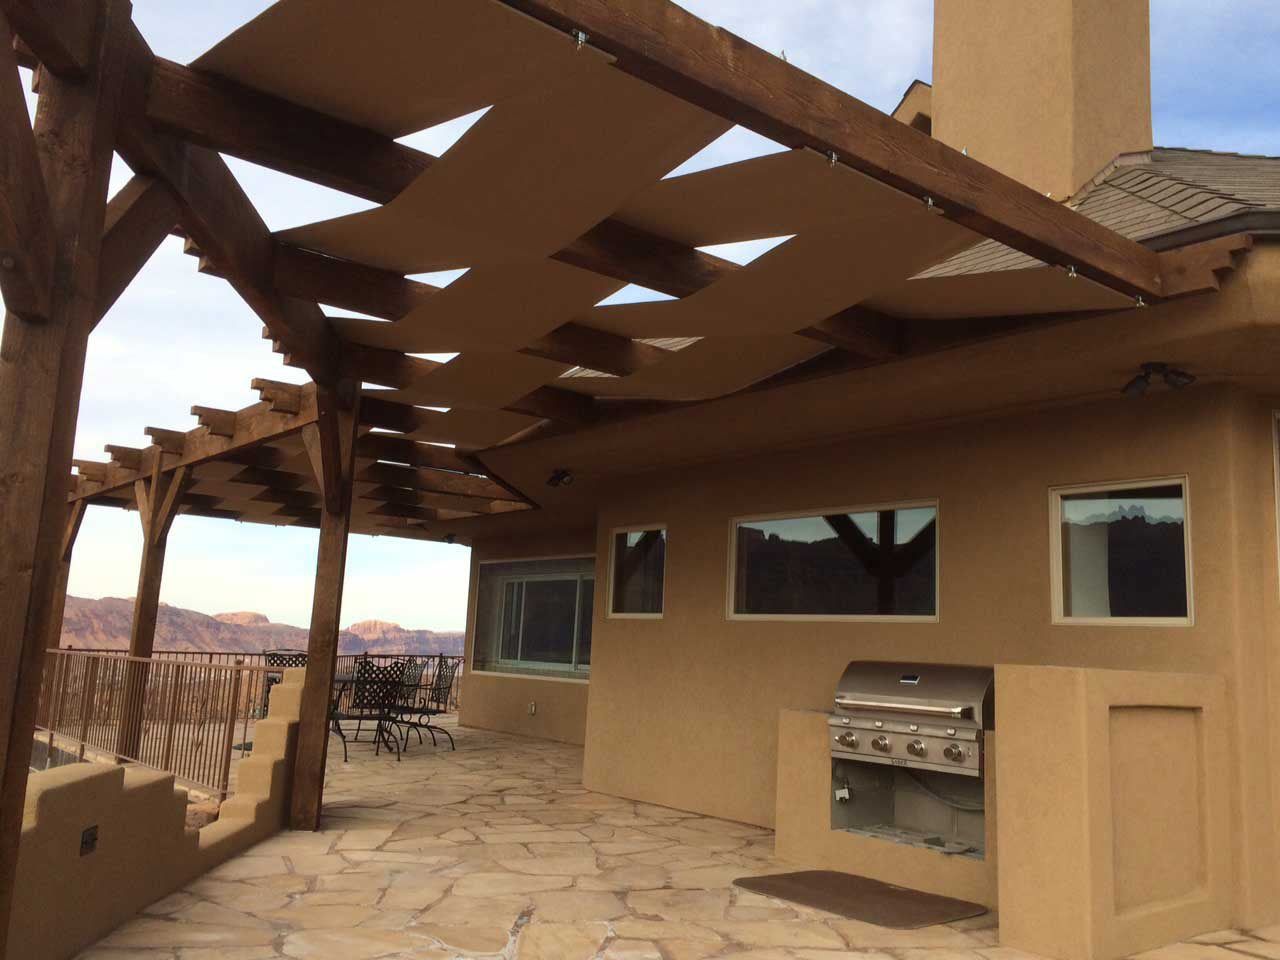 Roof fabric pergola shade - 12 Pergola Roofing Design Ideas Western Timber Frame